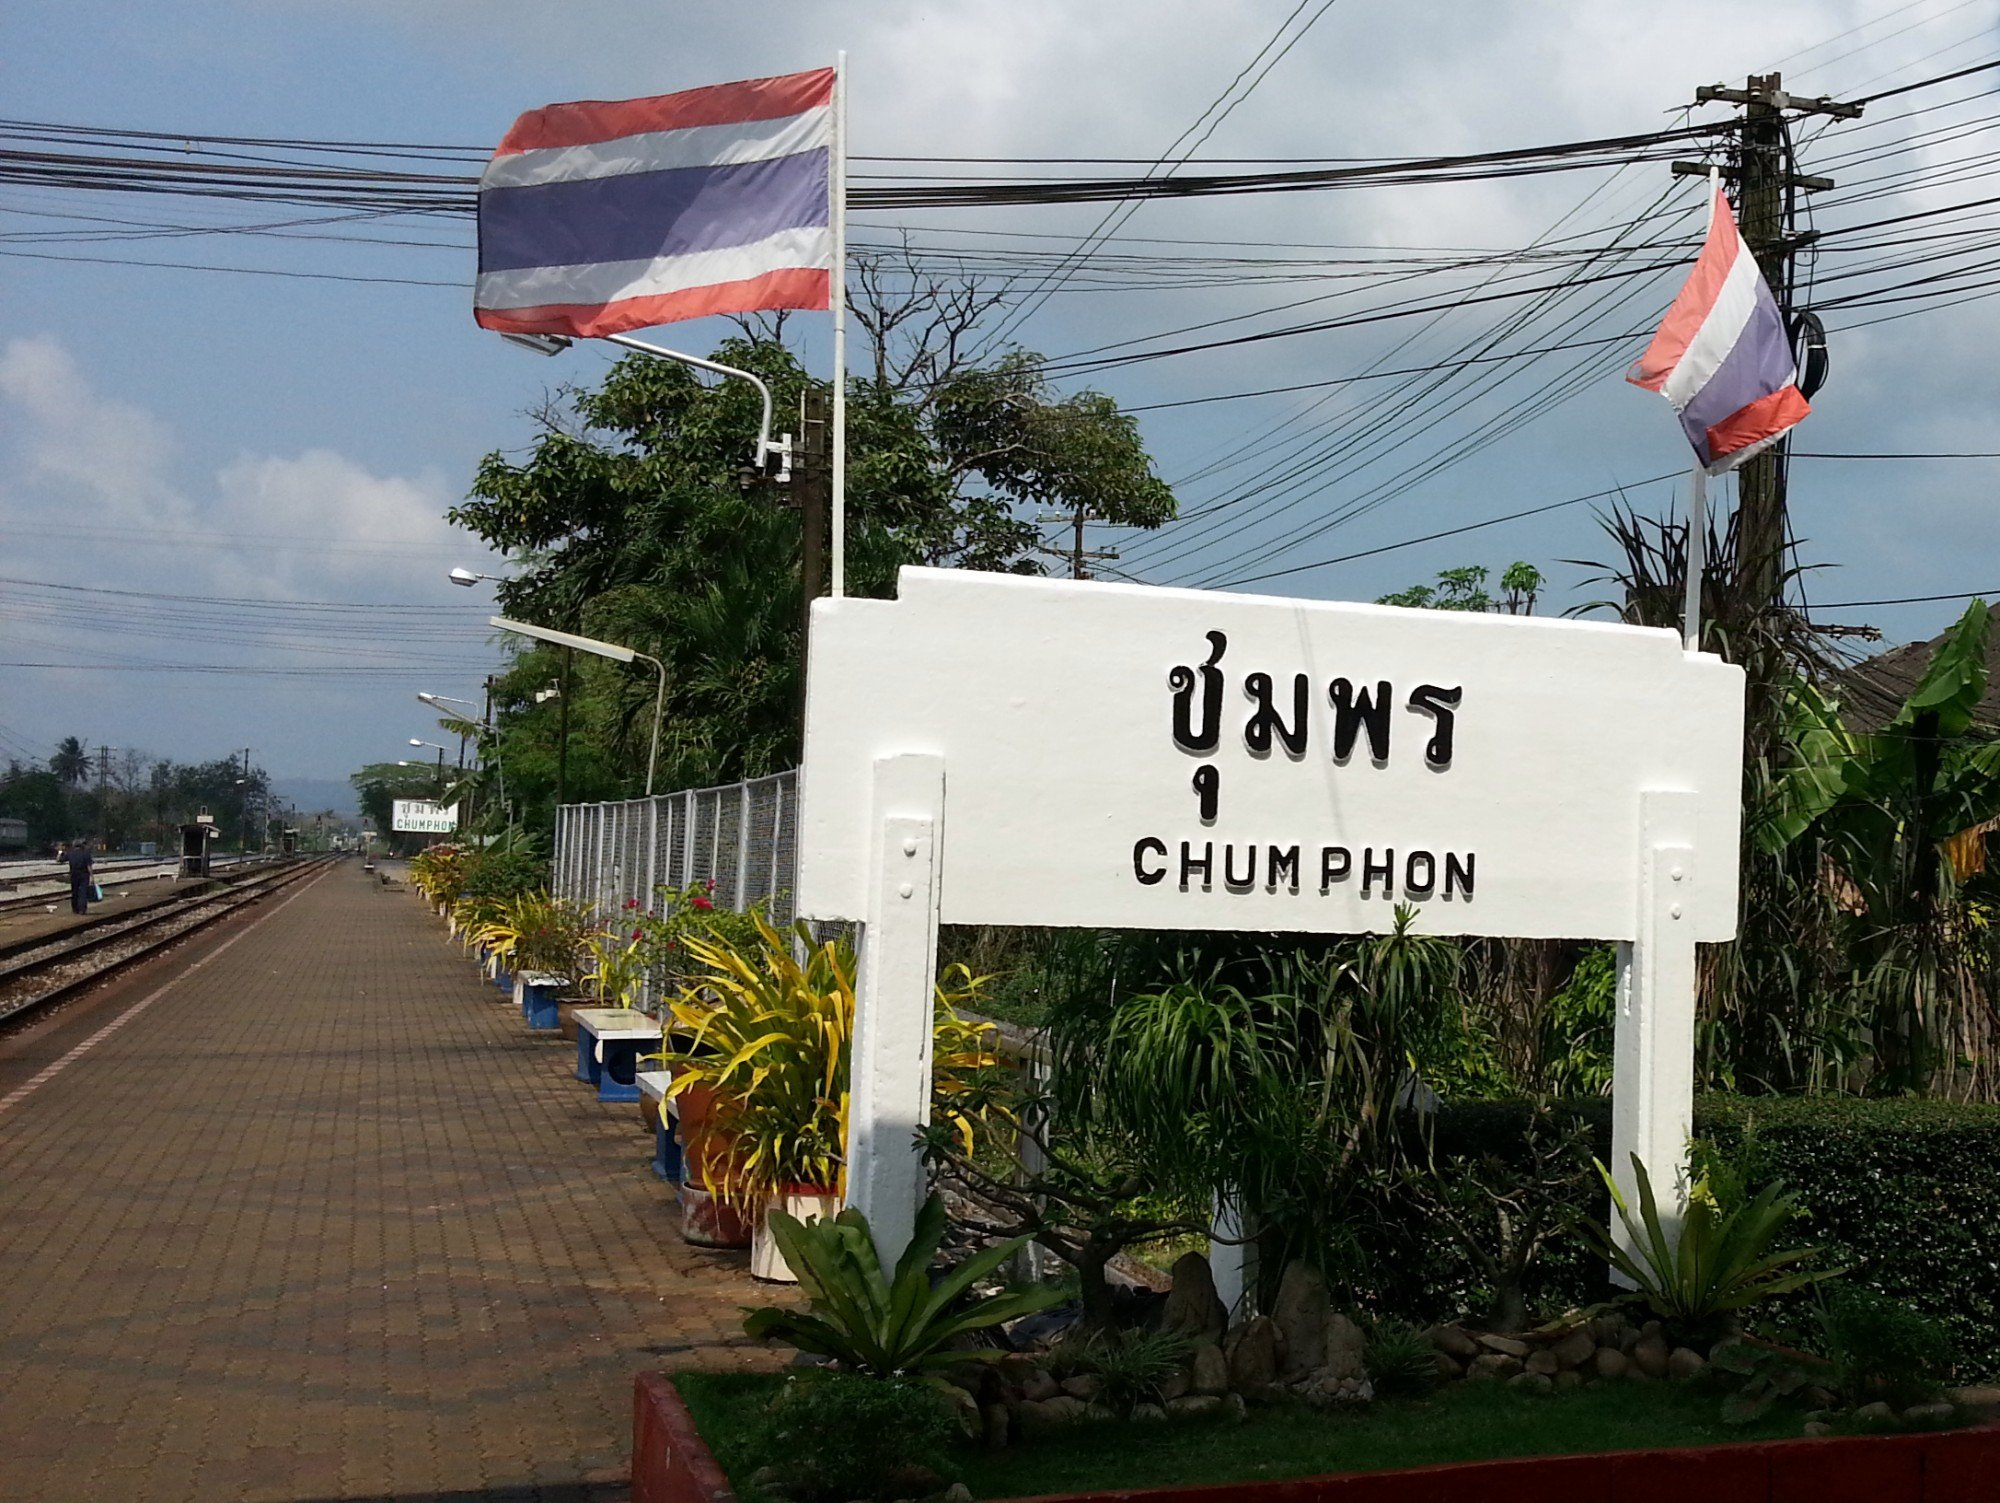 Main platform at Chumphon Railway Station